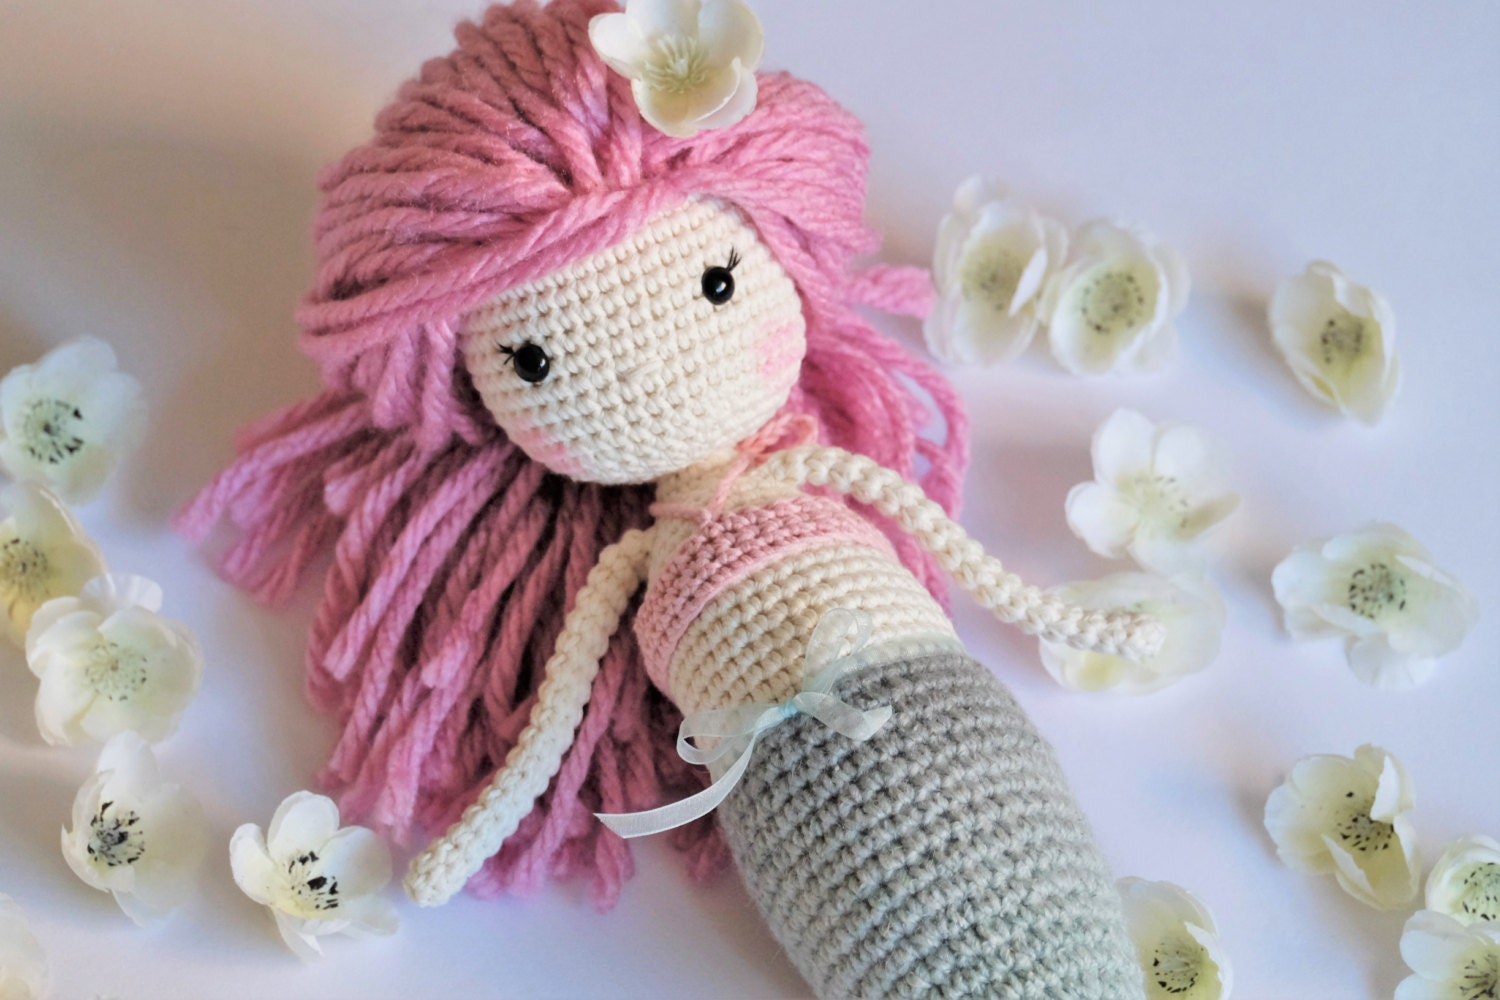 Crochet Amigurumi Mermaid Ready To Ship Plush Doll Gifts for